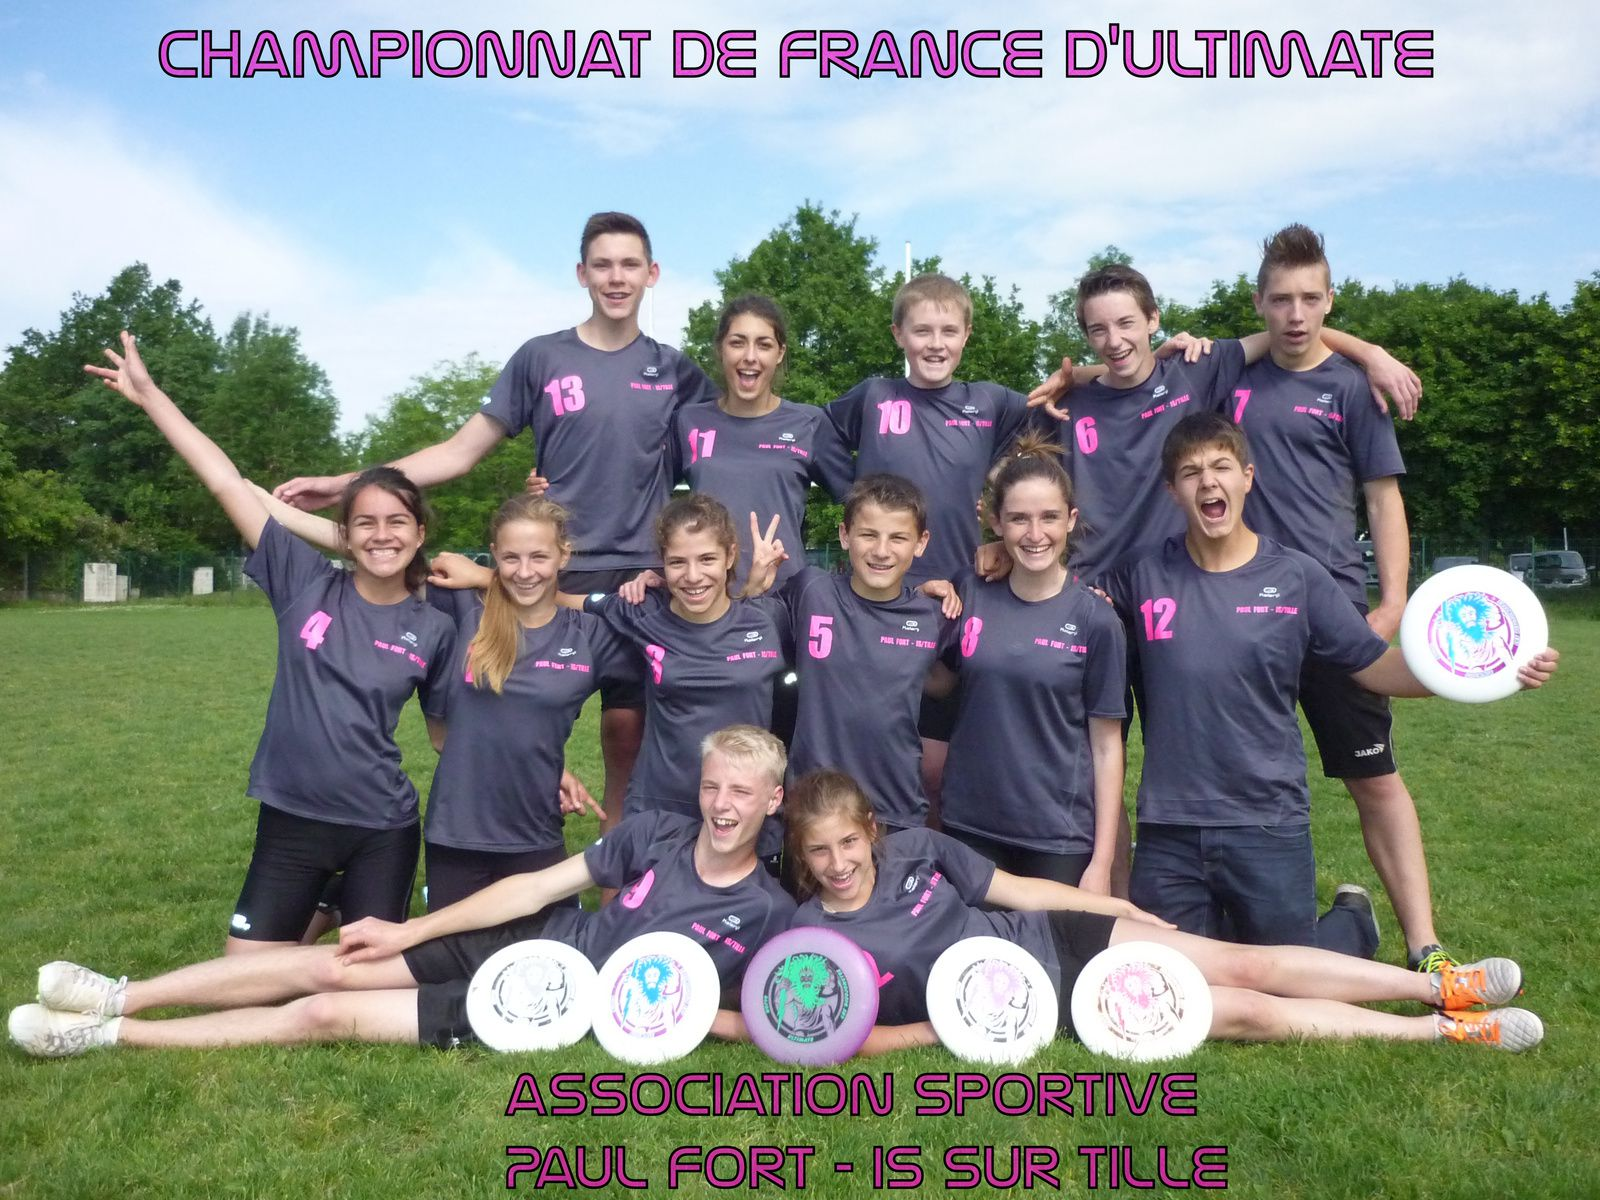 CHAMPIONNAT DE FRANCE D'ULTIMATE 2013/2014